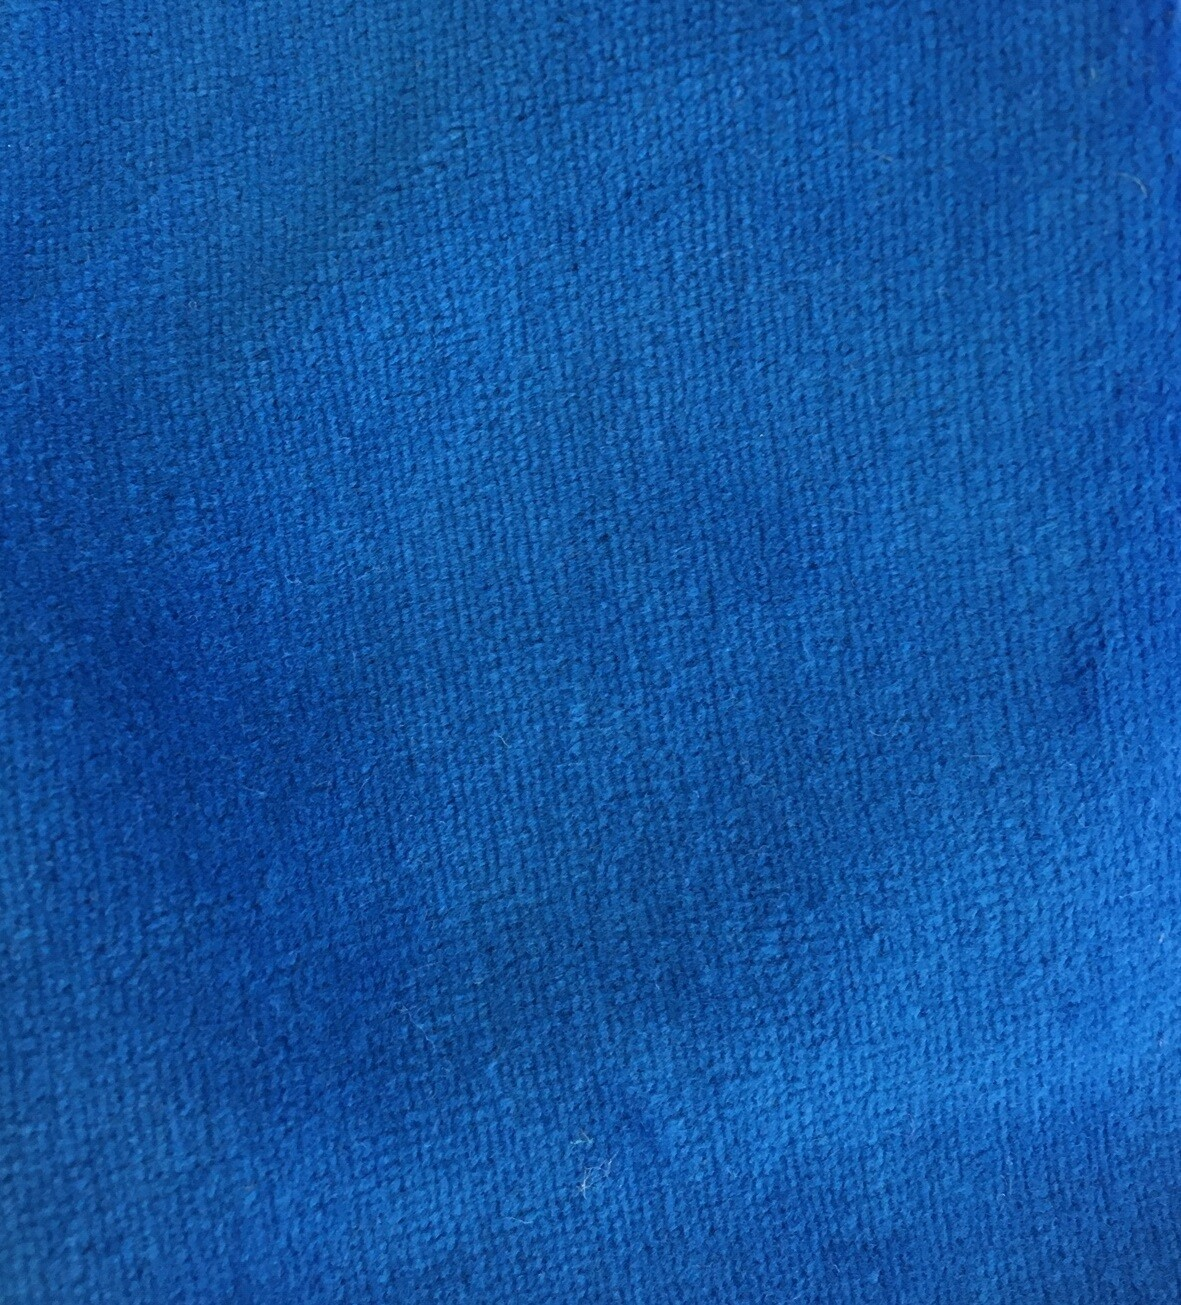 Cotton Plush Velour Fabric -- Blue